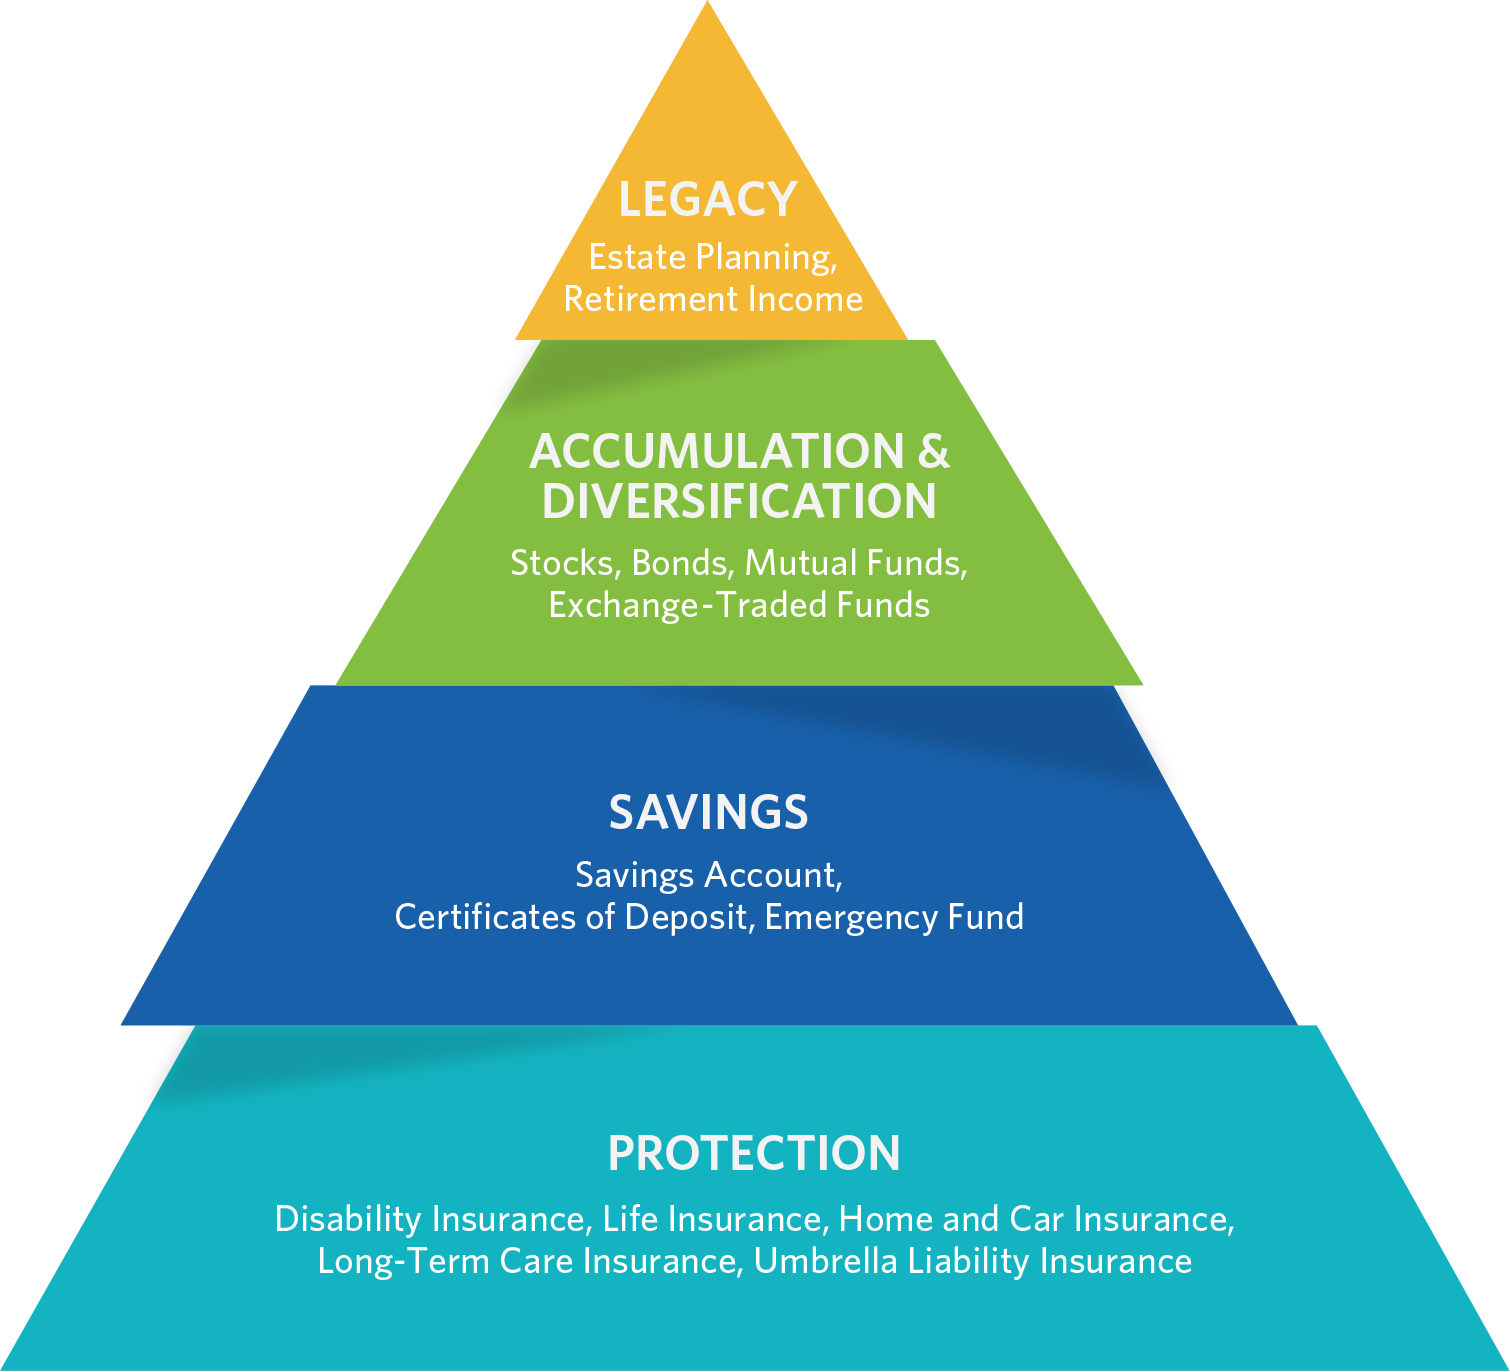 "A pyramid with four layers, and an arrow pointing up with the words ""more risk"" below the arrow. First layer: Protection: Disability insurance, life insurance, long-term care insurance, home and car insurance, emergency fund, umbrella liability insurance. Second layer: Savings & wealth accumulation: Savings account, certificates of deposit. Third layer: Growth & diversification: Stocks, bonds, mutual funds, exchange-traded funds. Top layer: Legacy: Estate planning, retirement income."